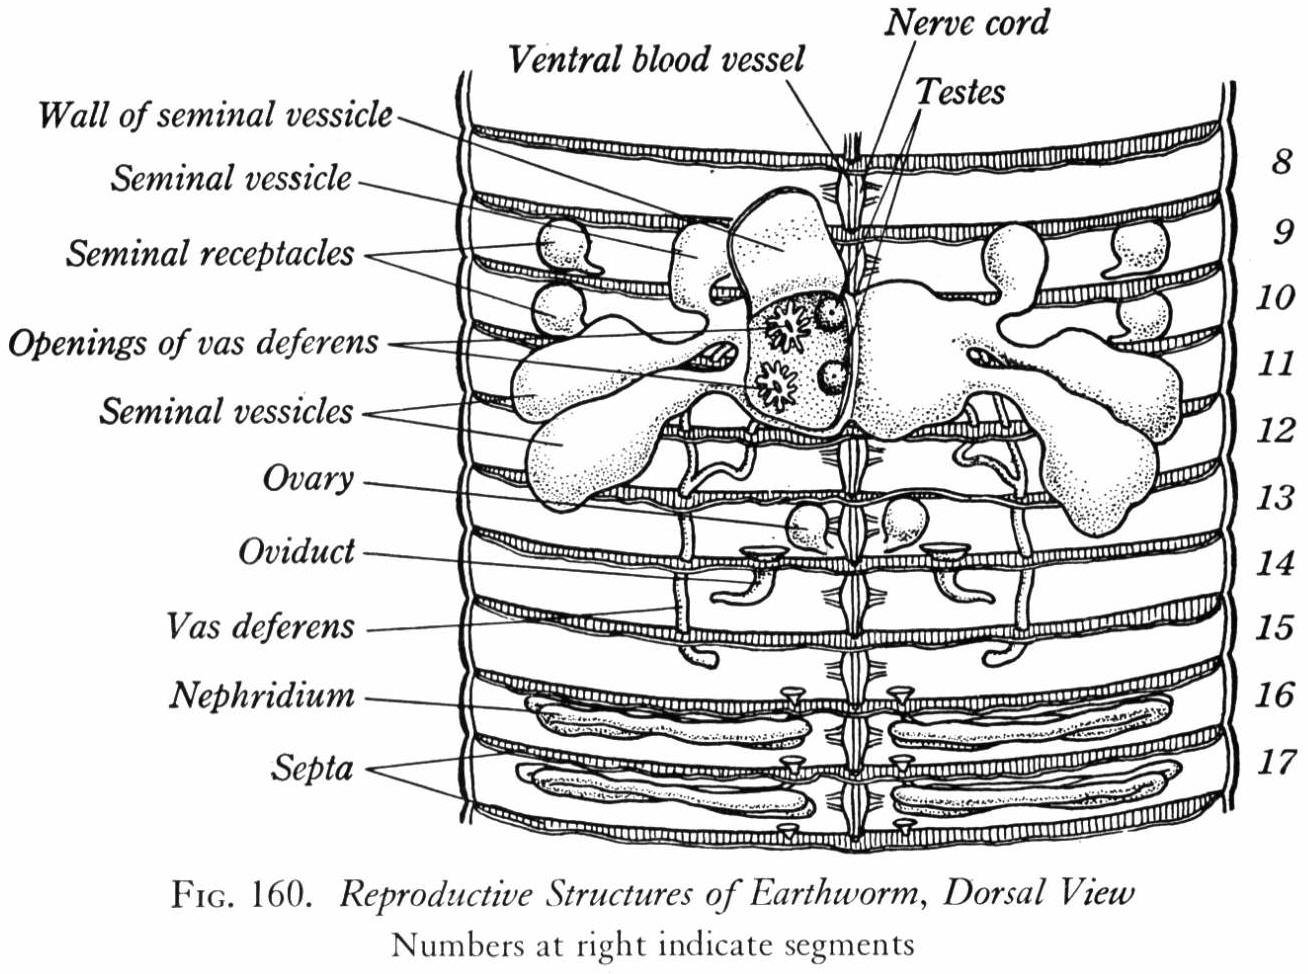 worm diagram labeled e36 stereo wiring earthworm dissection